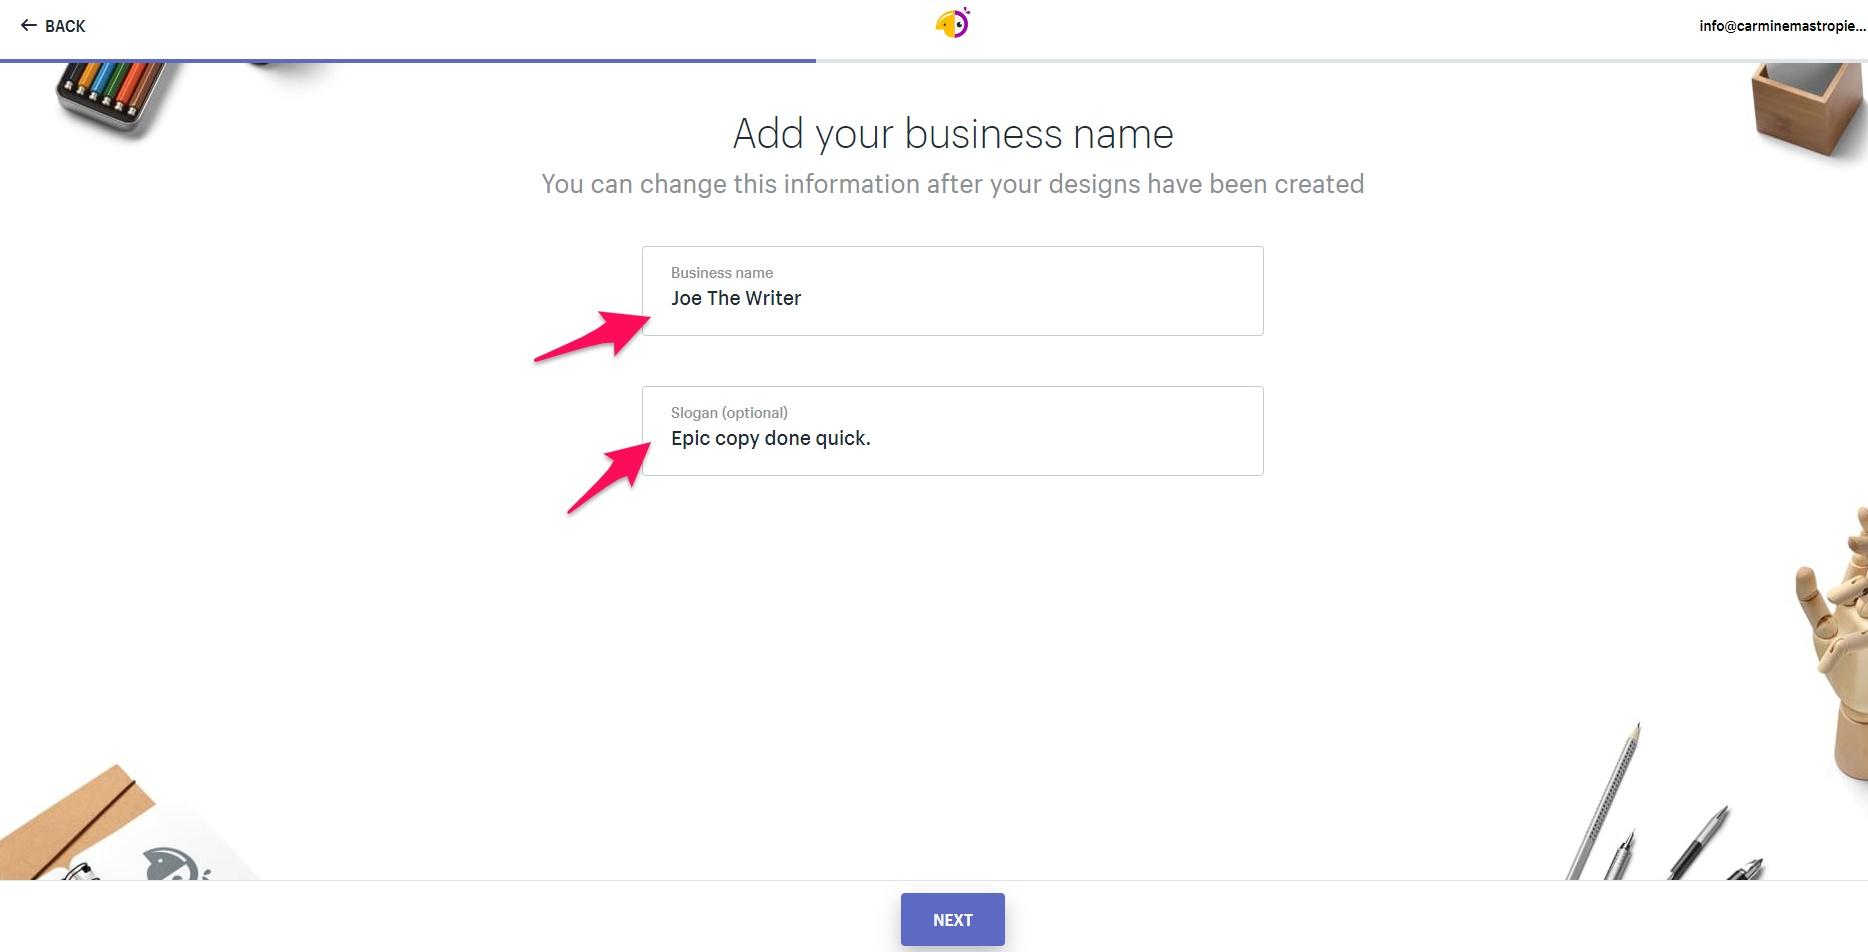 Adding business name on Hatchful